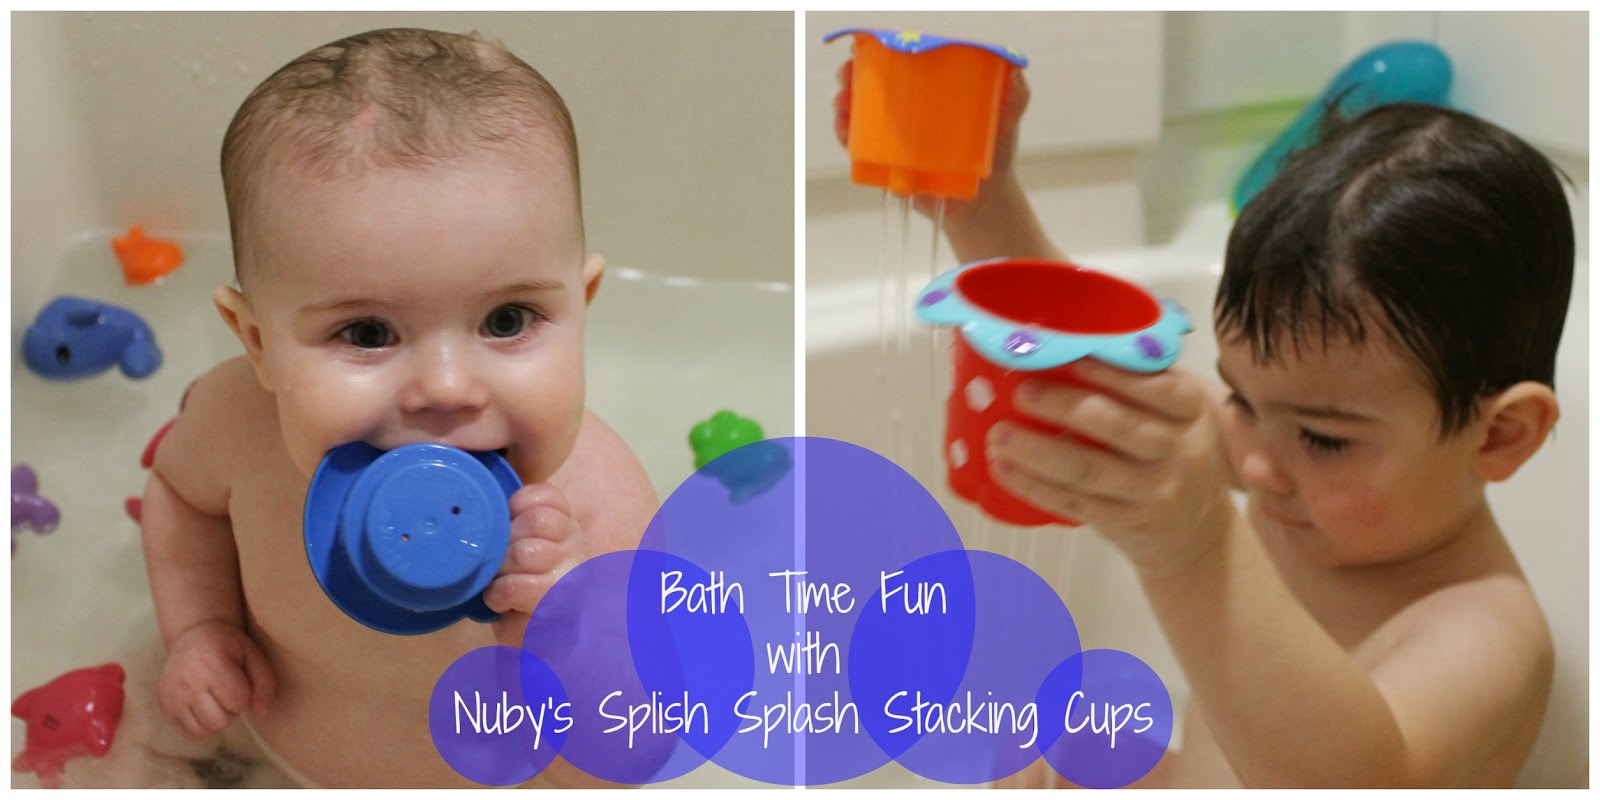 Bath Time Fun with Nuby